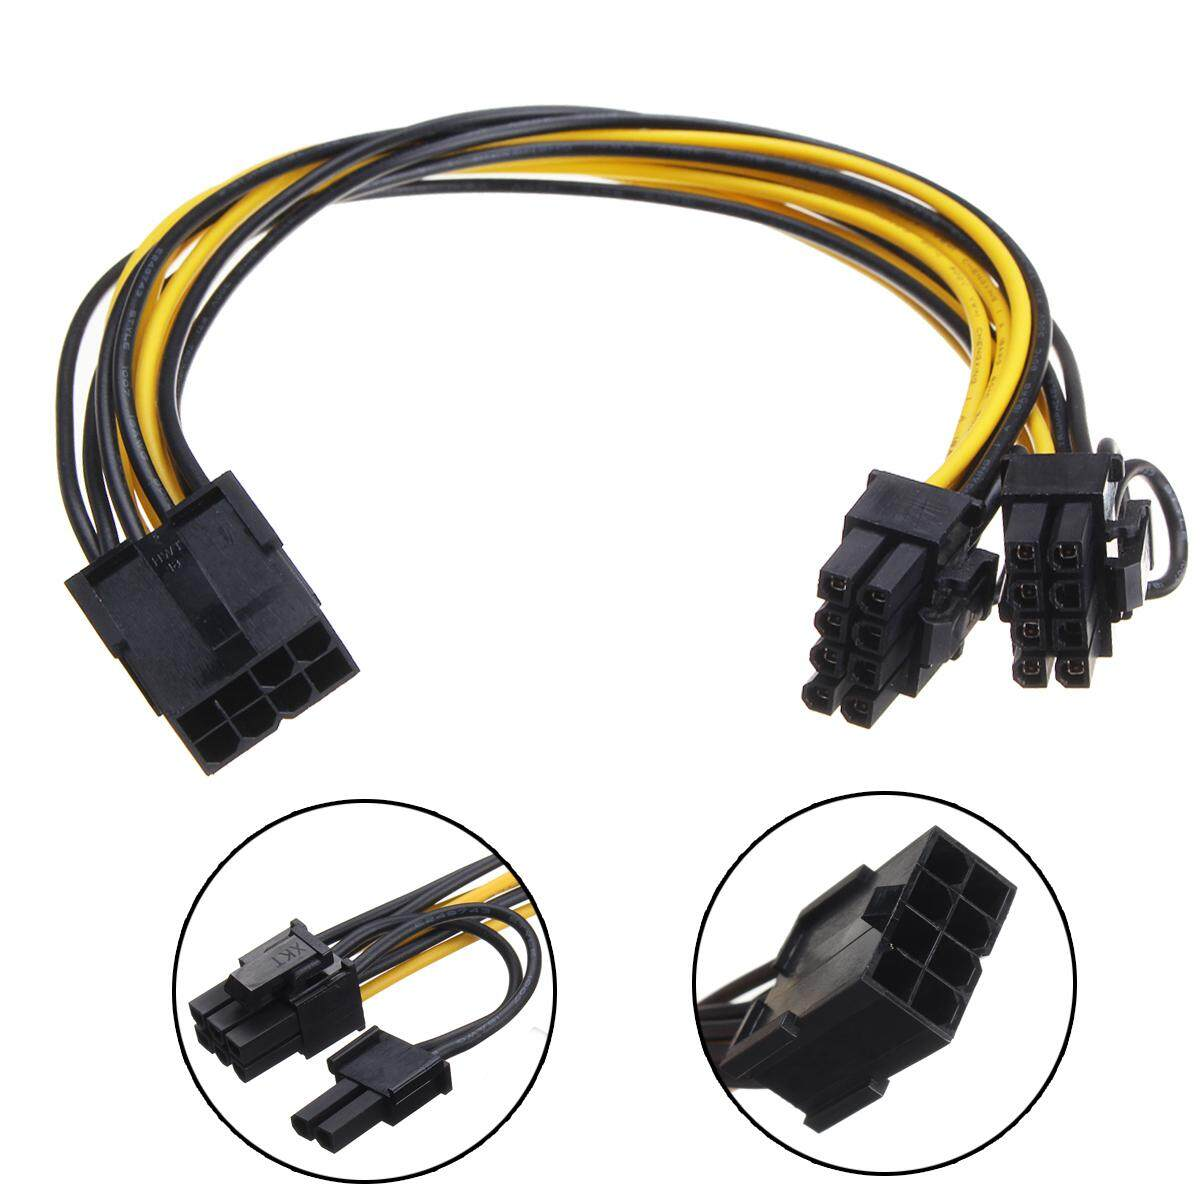 Serial Cables Buy At Best Price In Singapore Www Adapters Usb 20 1m Dual Power Cable 8pin To 8 6 2 Pin Video Vga Card Supply Adapter